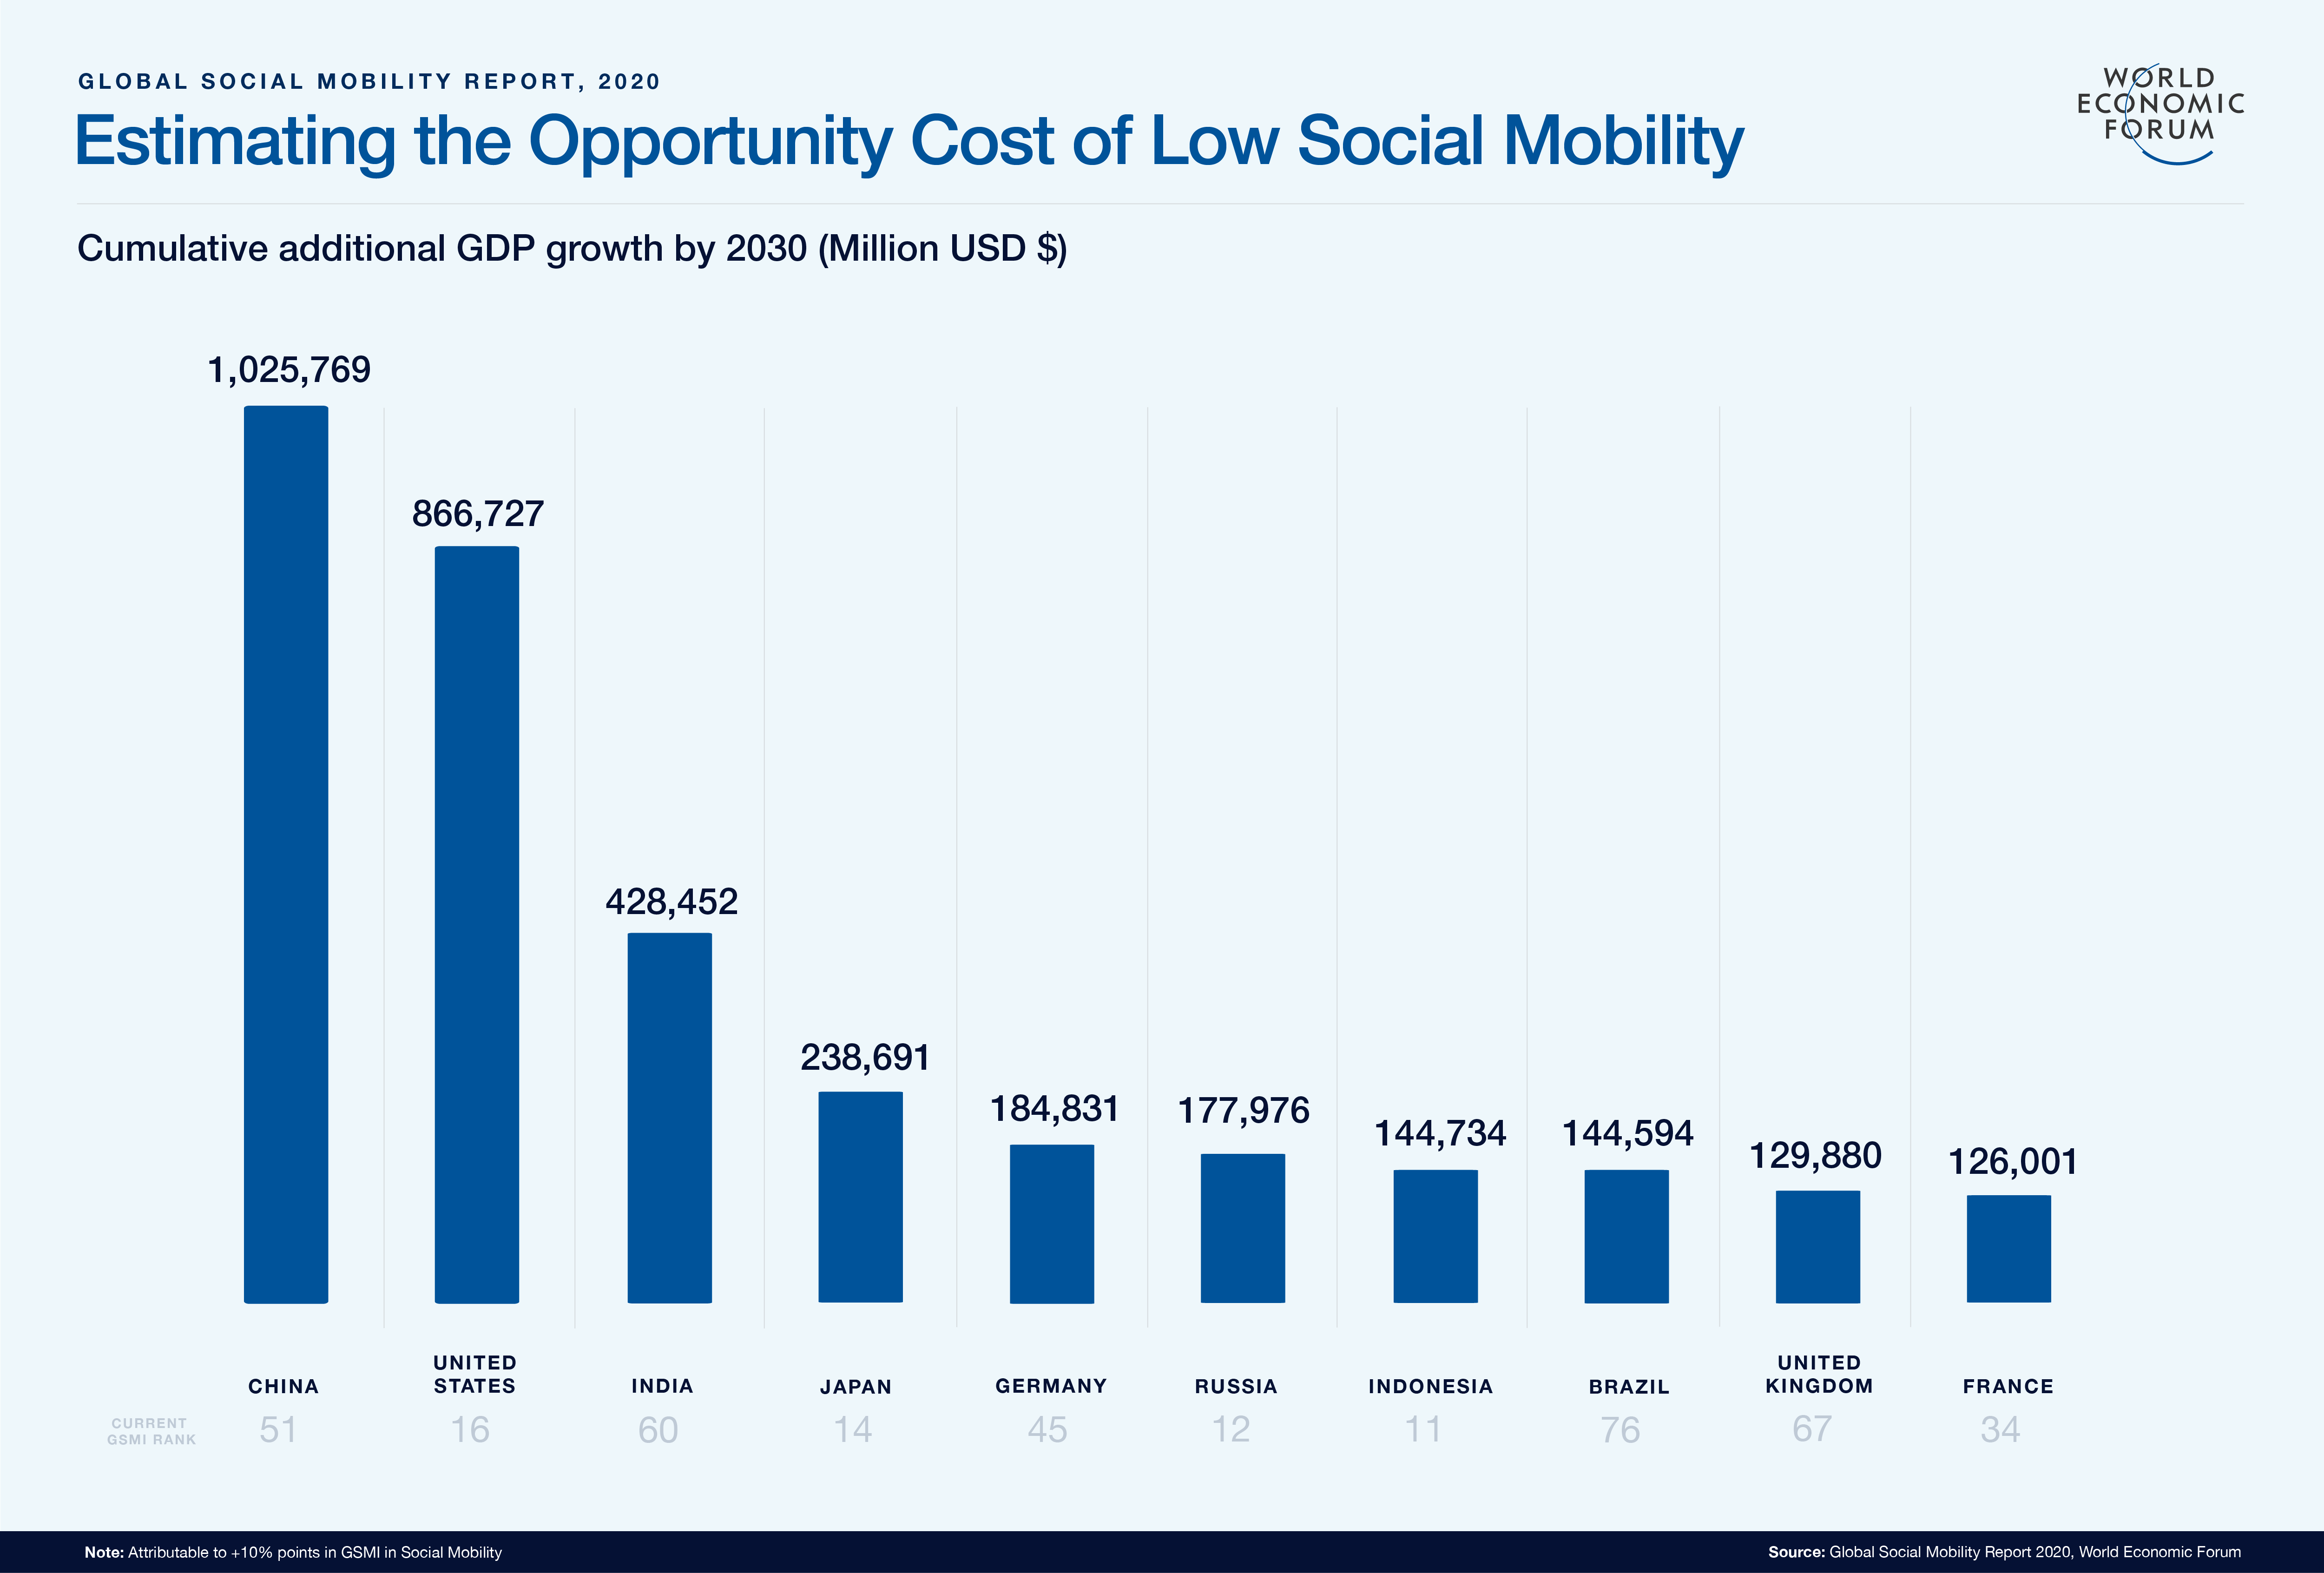 Estimating the cost of low social mobility